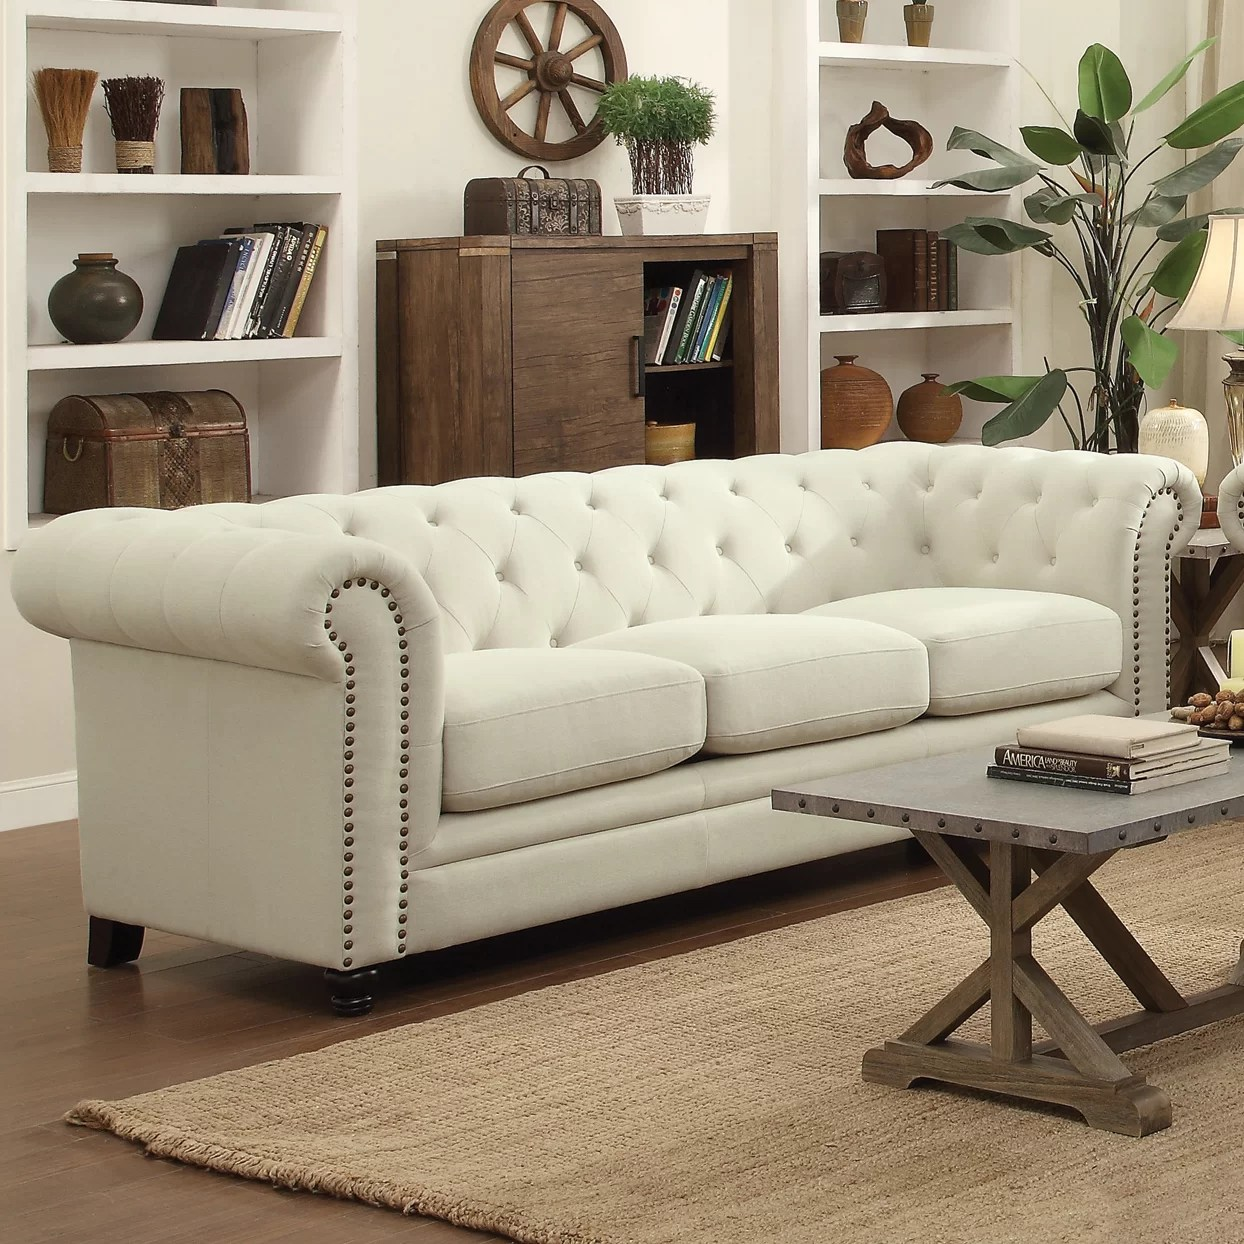 Chesterfield Lounge Dalila Chesterfield Sofa